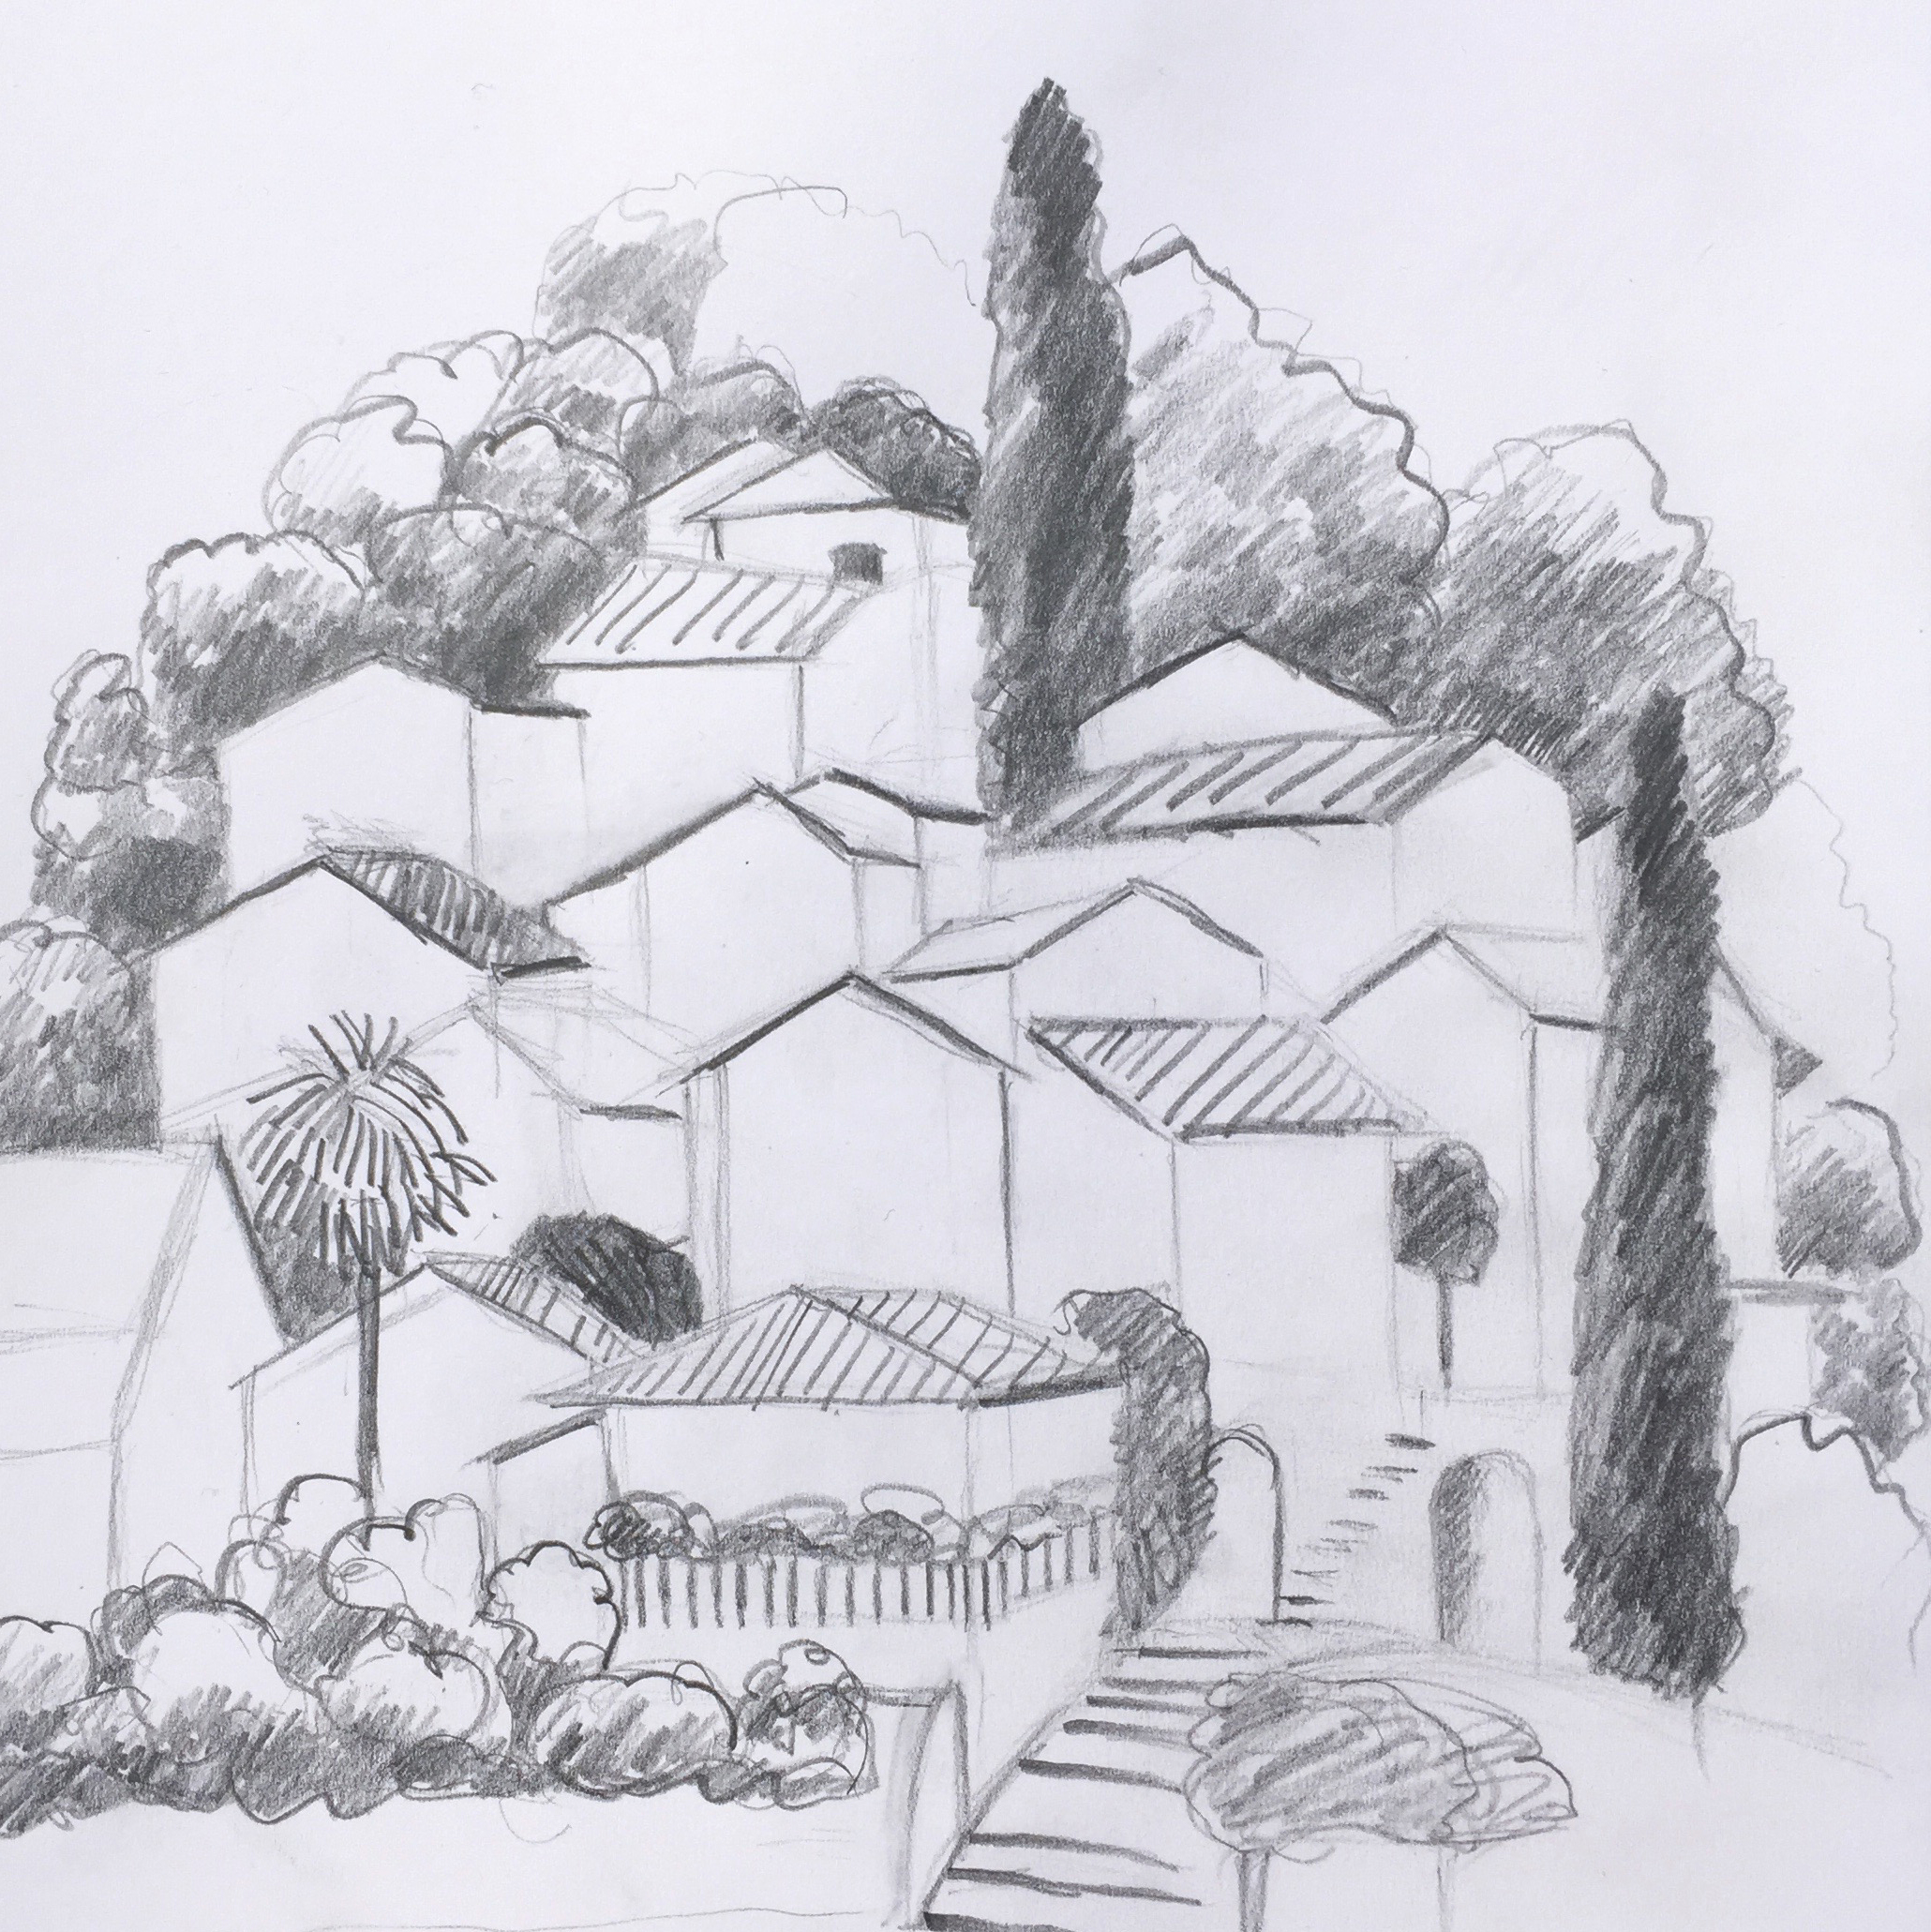 St. Abbondio, Urban Sketching, Workshopwoch,Astrid Amadeo